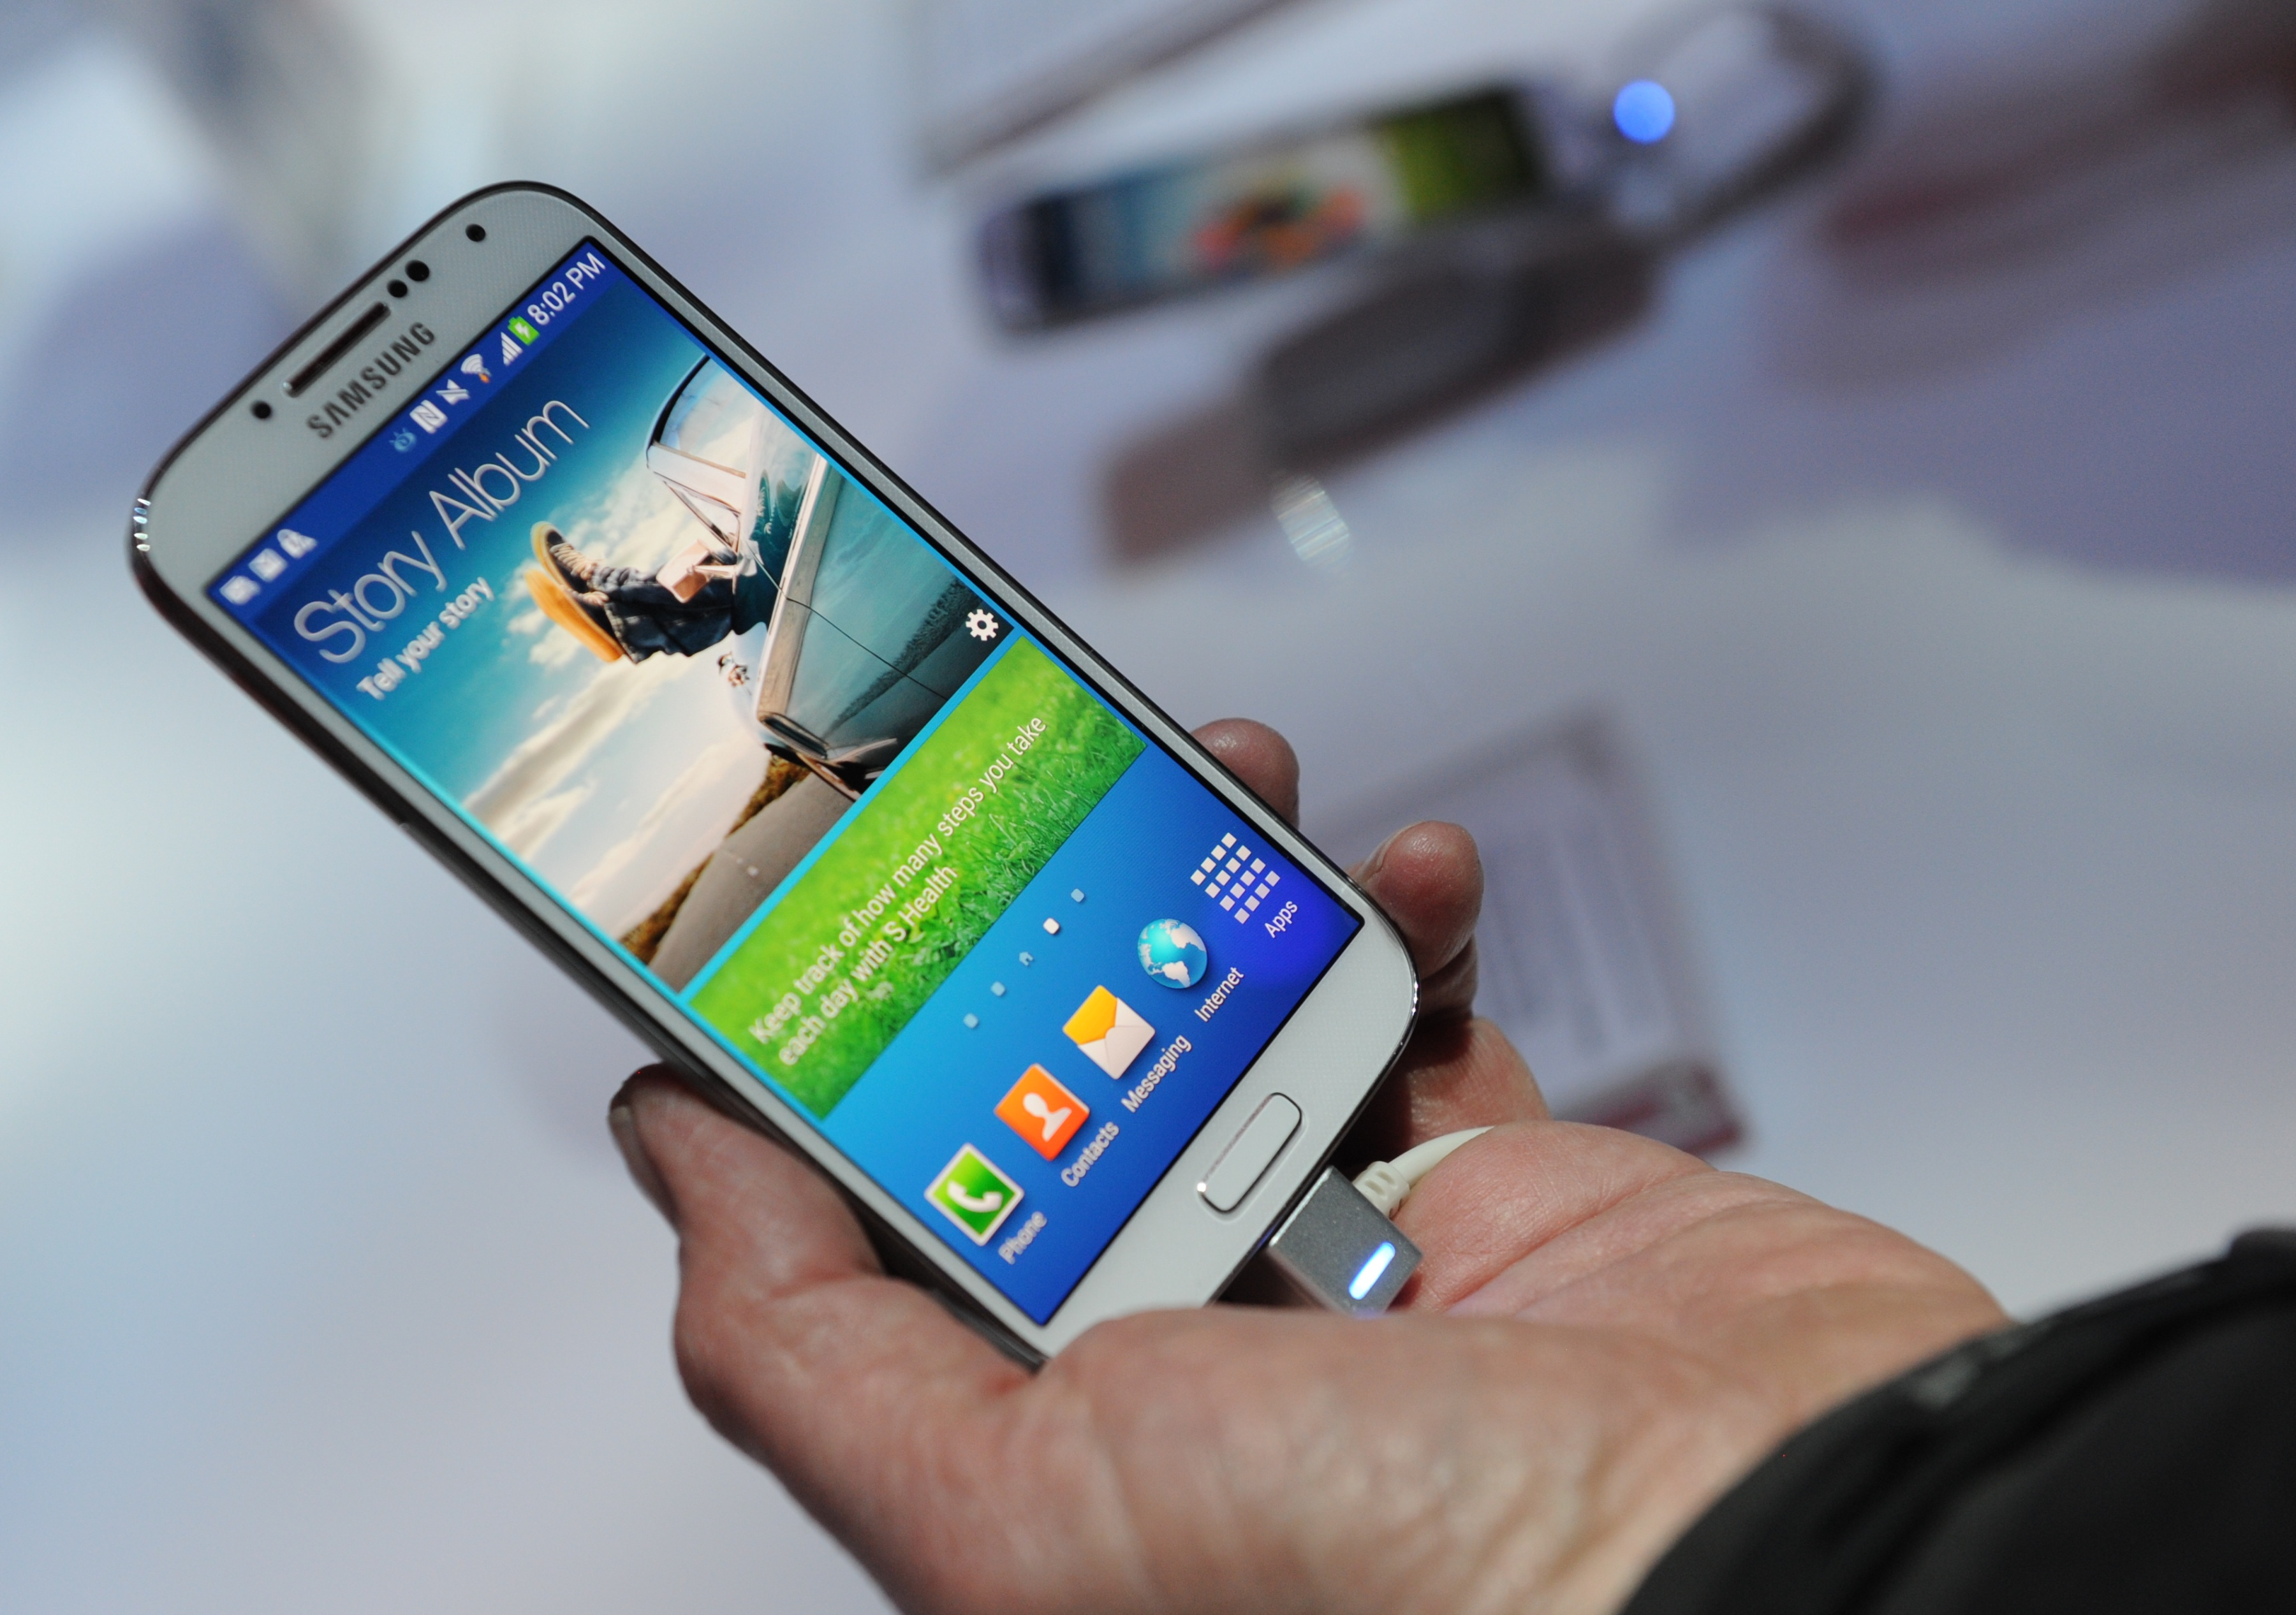 Samsung Galaxy S4 Pre-orders Open In The UK - Here Are The Prices